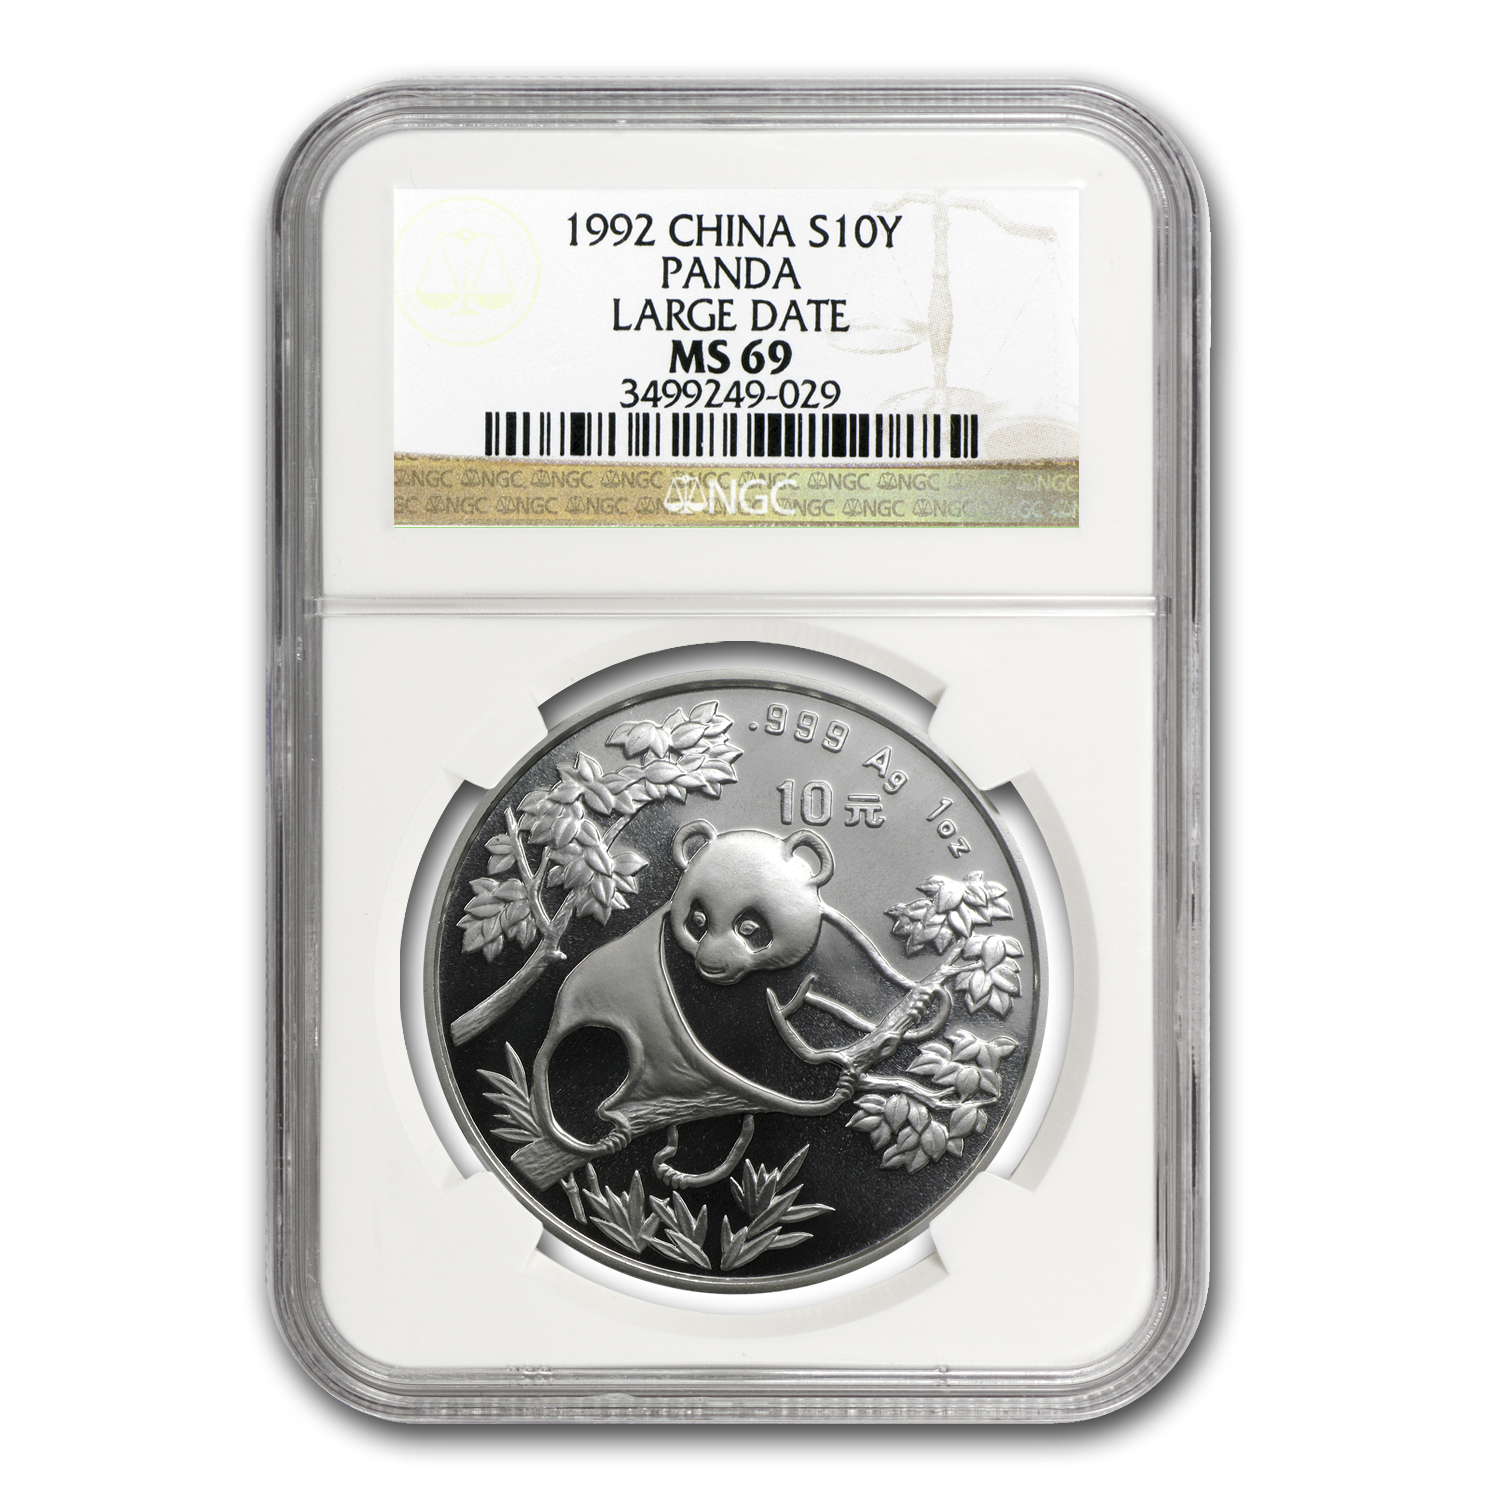 1992 China 1 oz Silver Panda MS-69 NGC (Large Date)